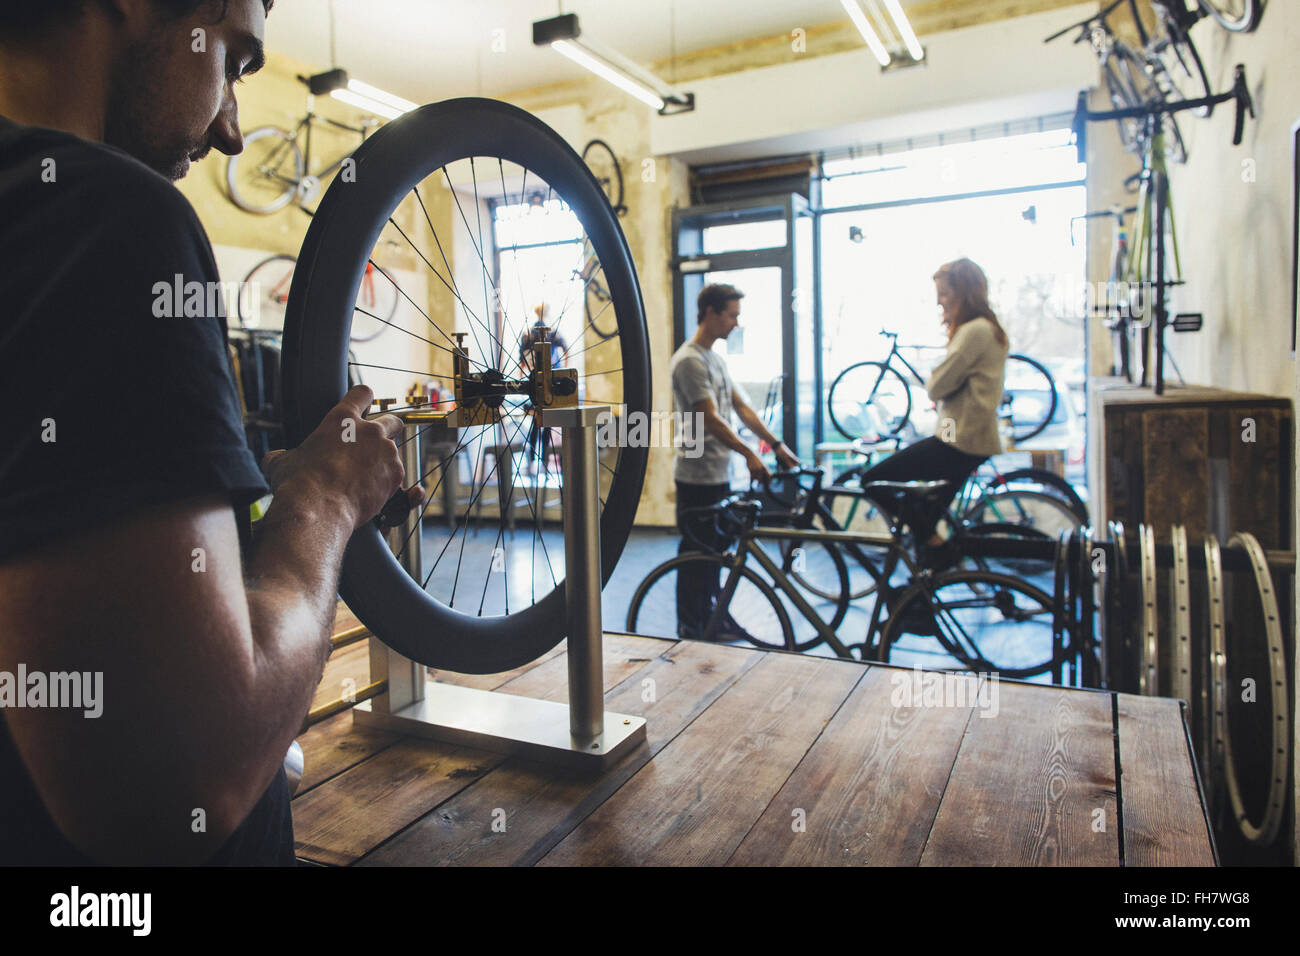 Mechanic, salesman and client in a custom-made bicycle store - Stock Image